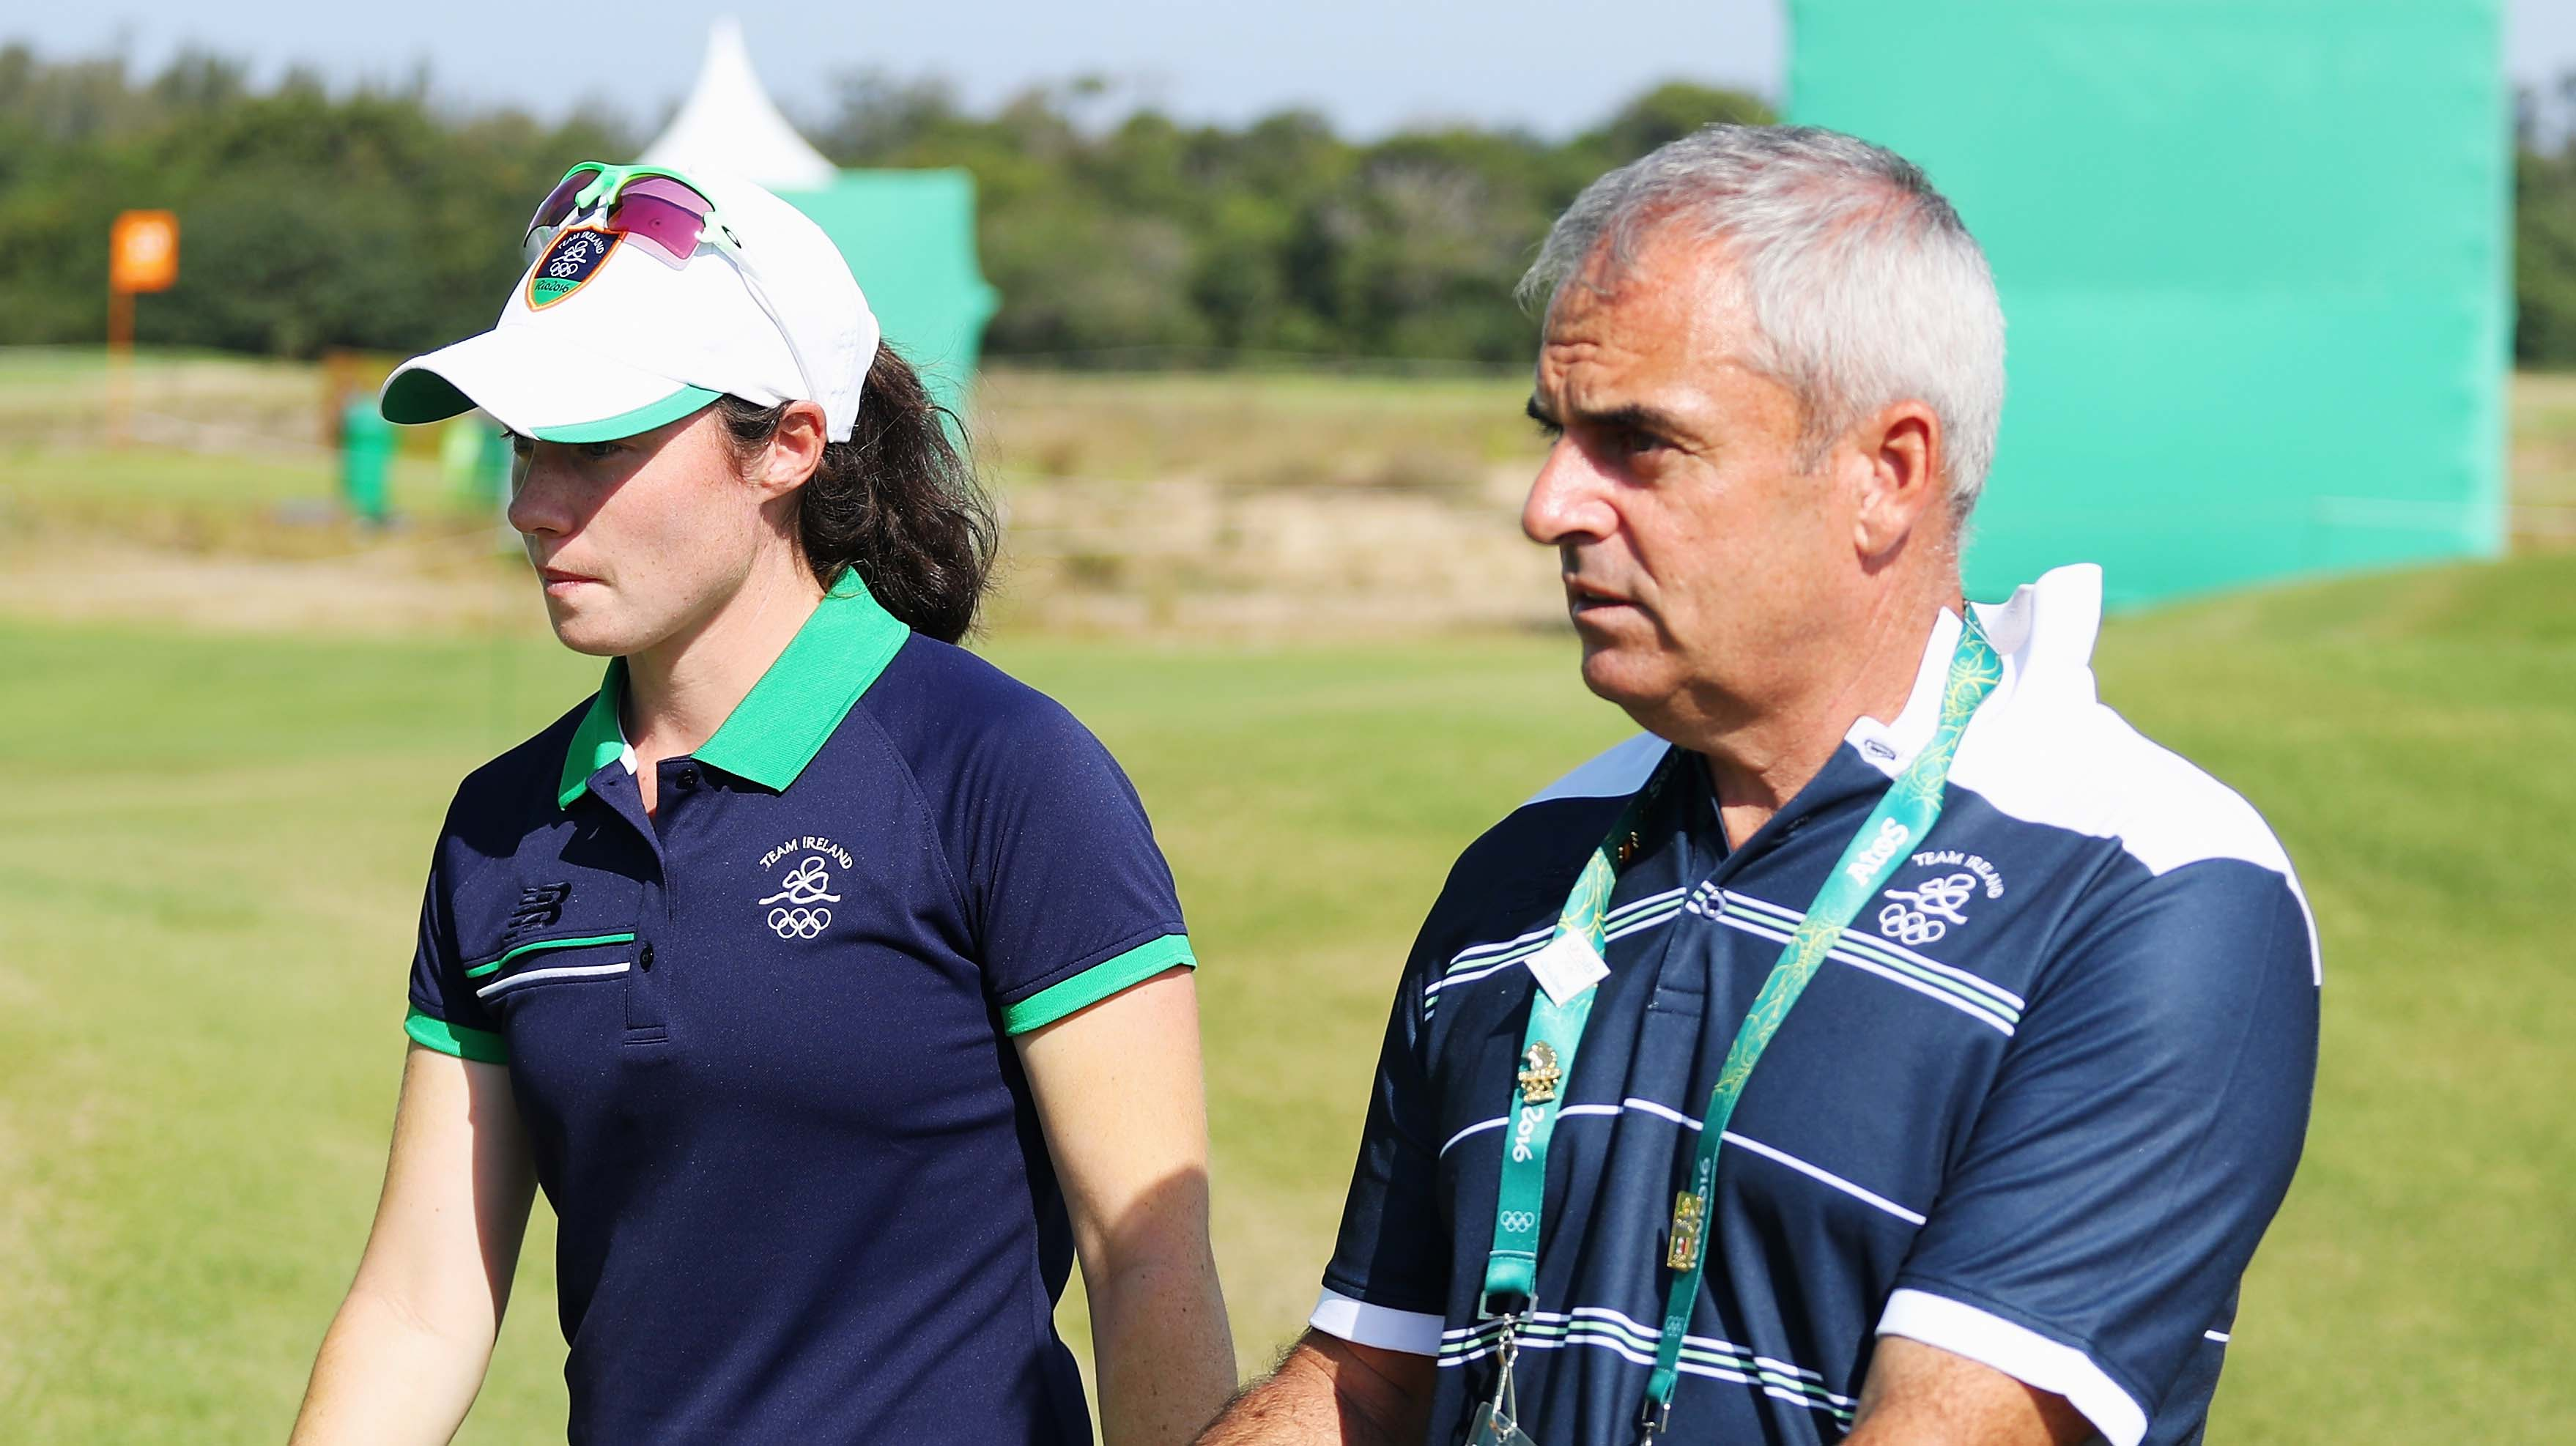 Leona Maguire and Paul McGinley